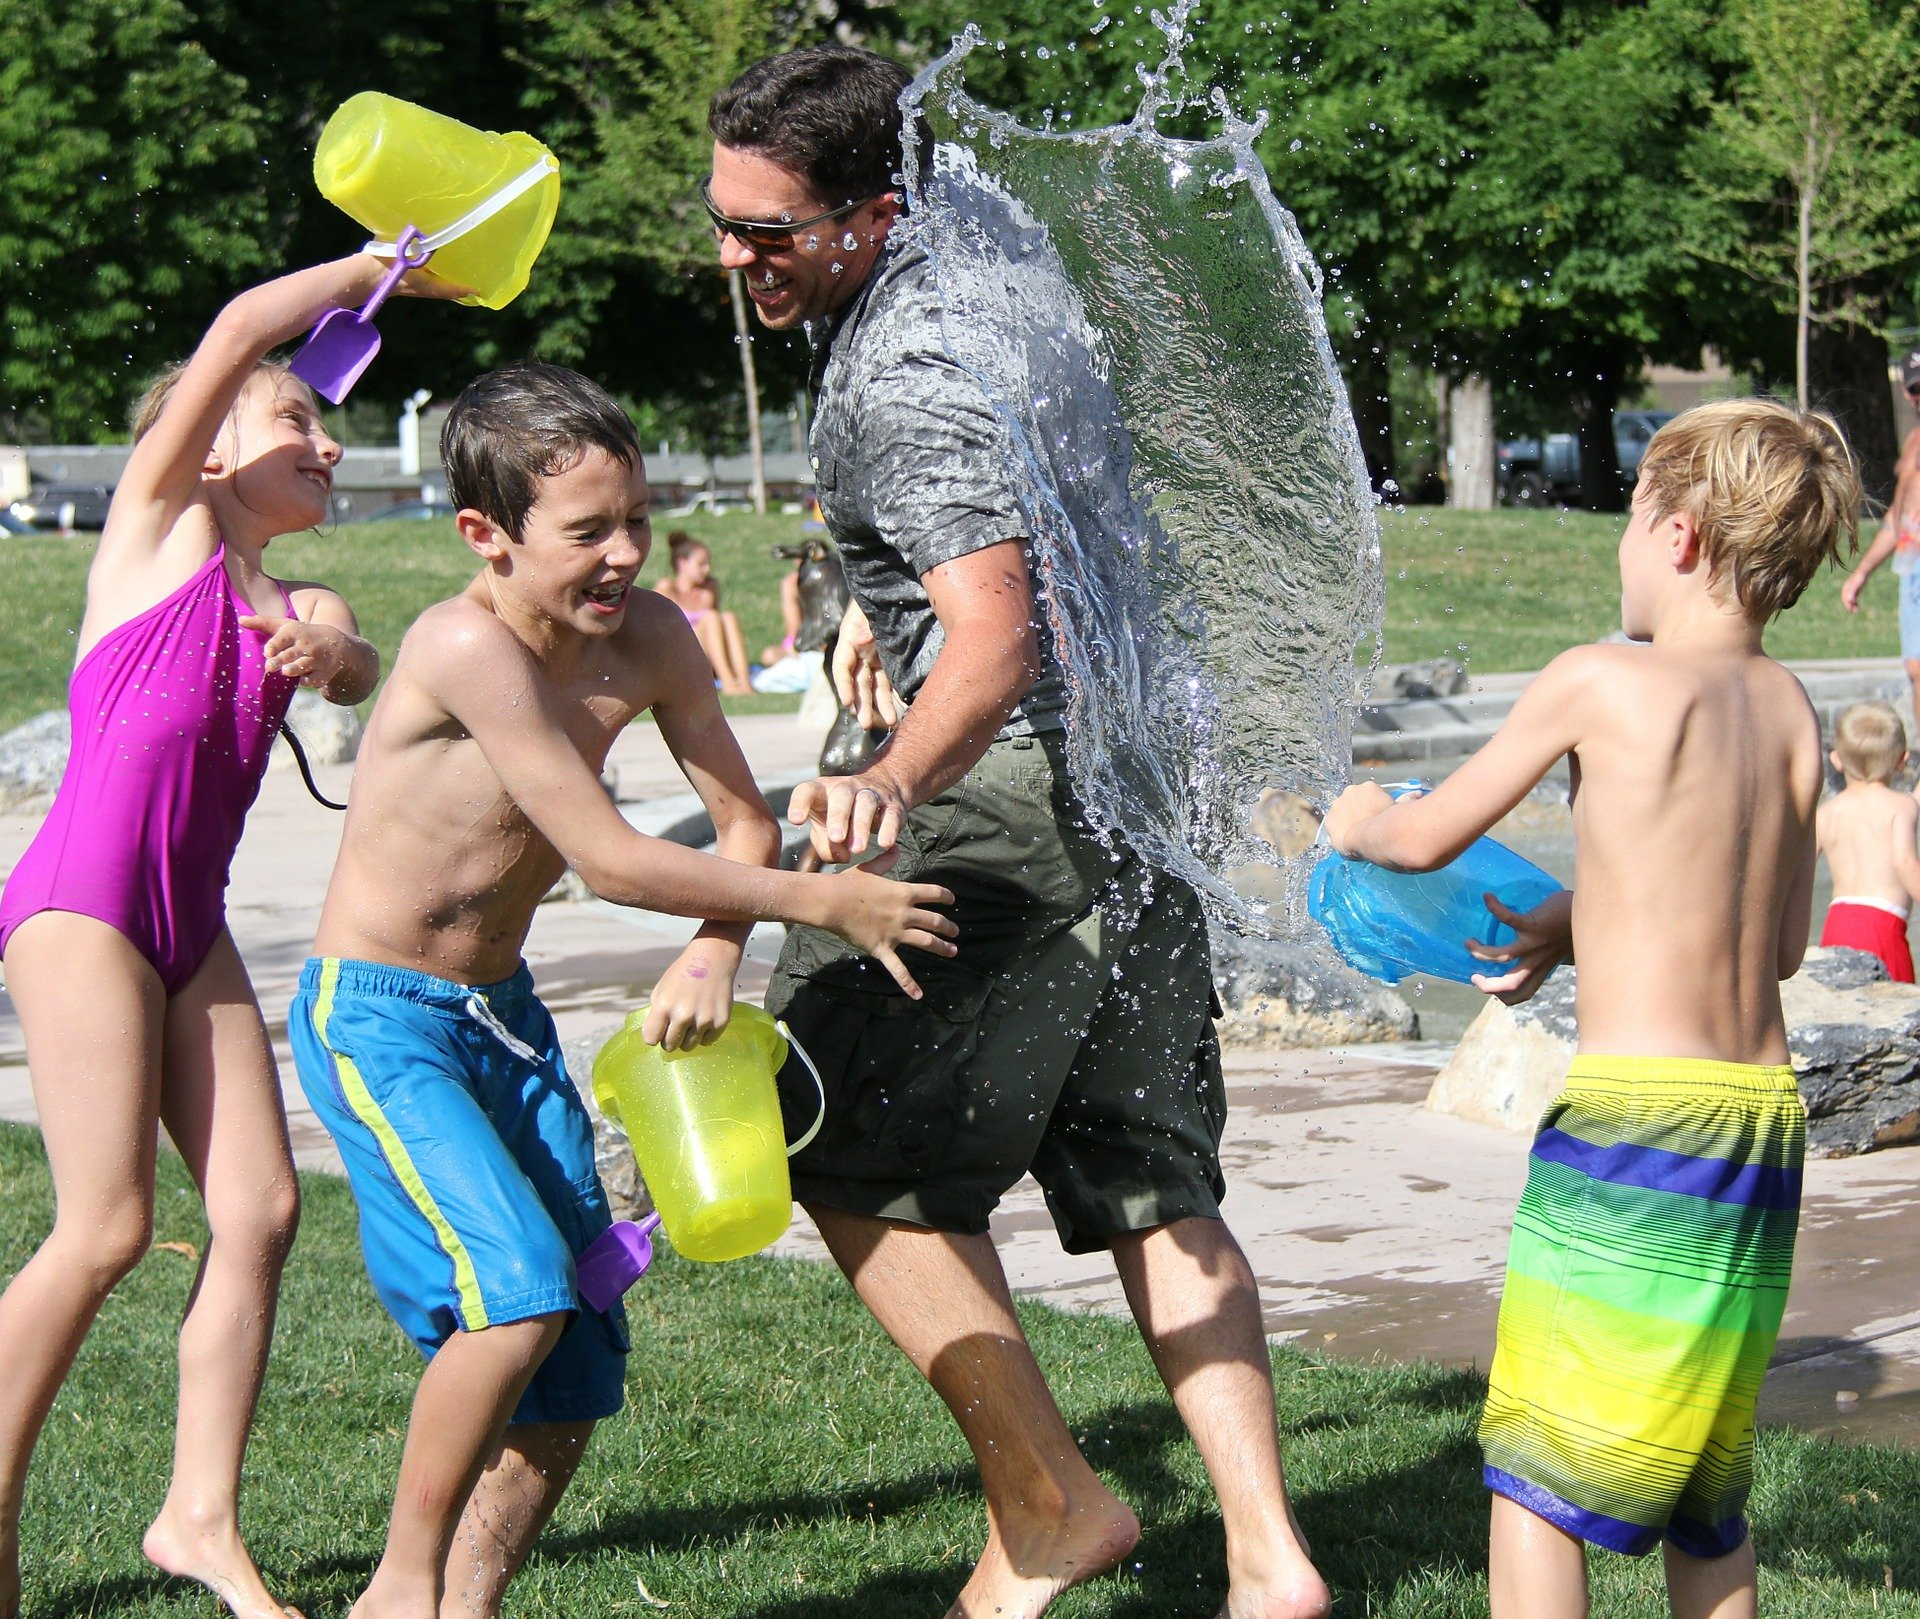 All God's Children: The Church Family Gathers for a Very Blessed Summer (GenOn Ministries)